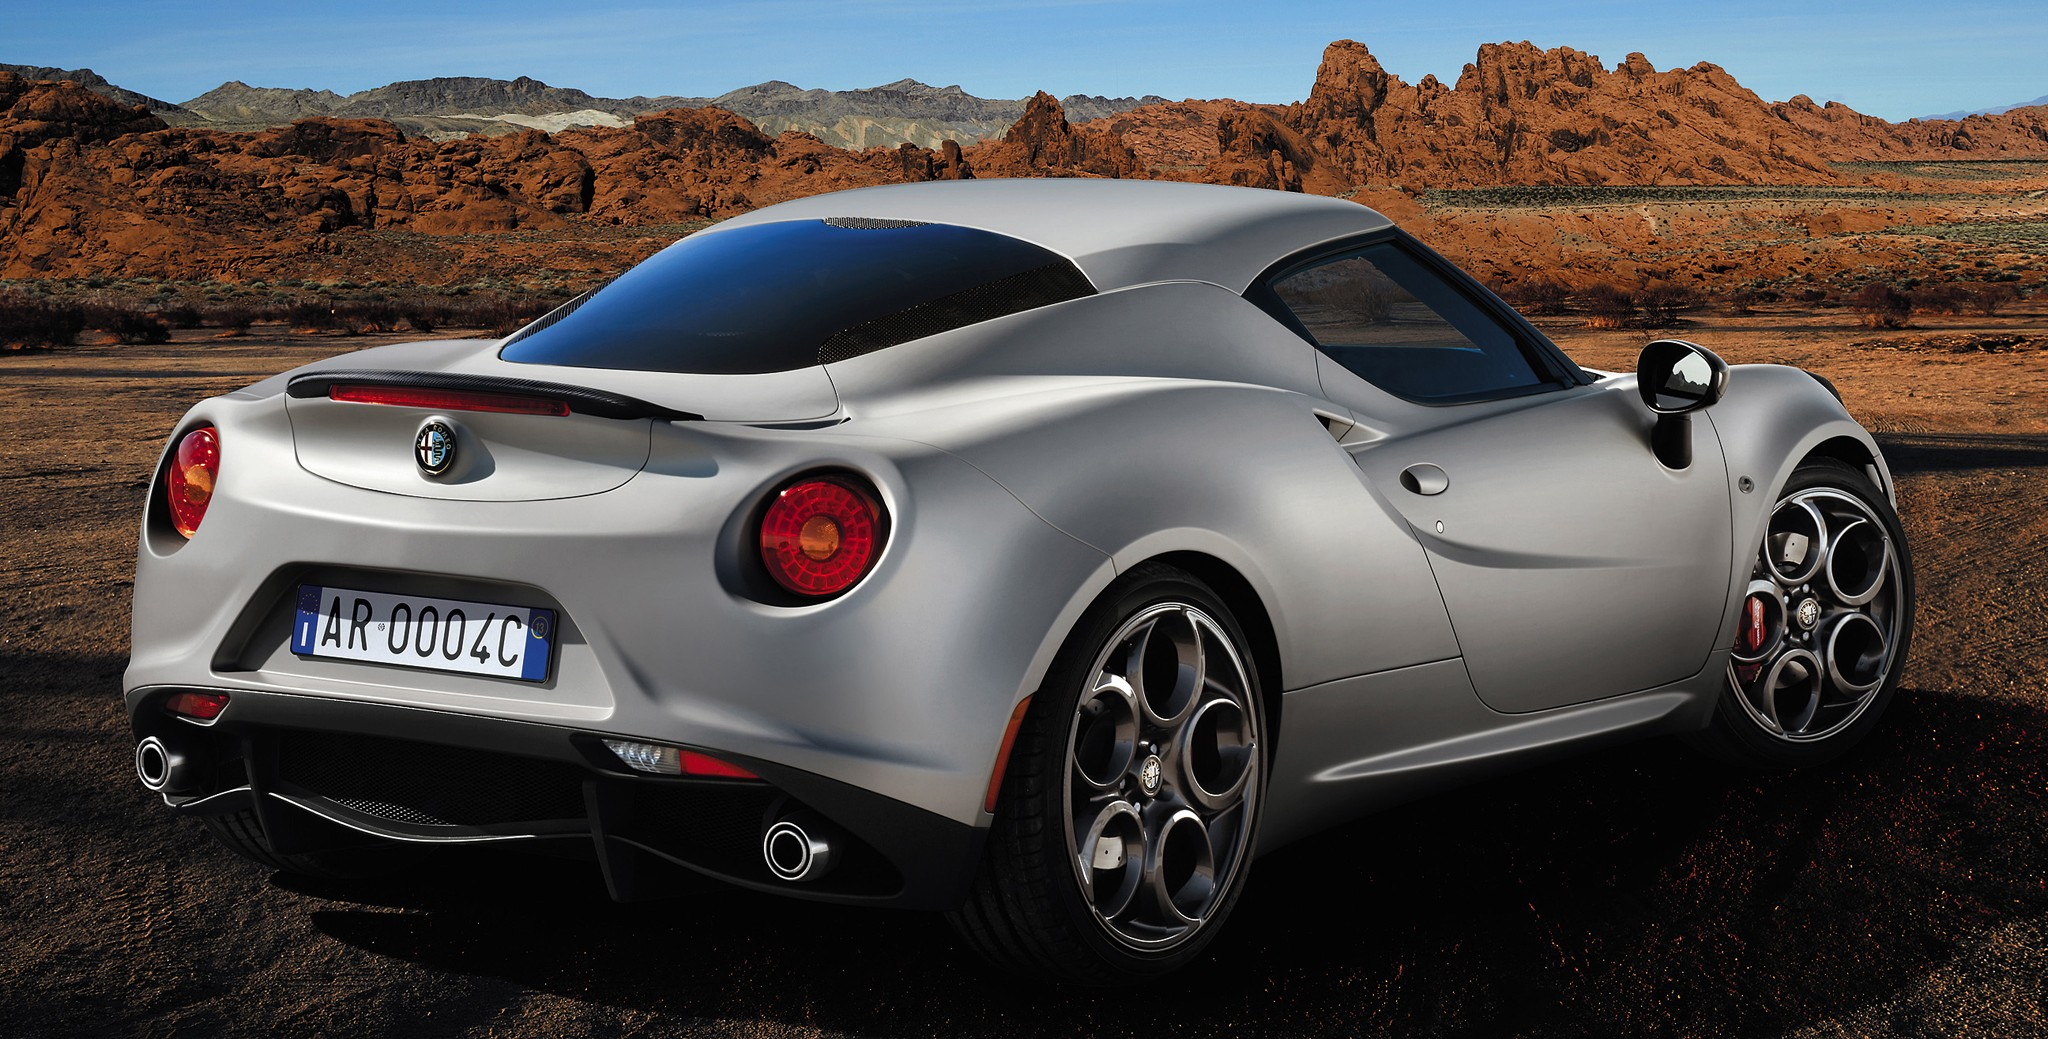 alfa romeo 4c launch edition limited to 1 000 units image. Black Bedroom Furniture Sets. Home Design Ideas